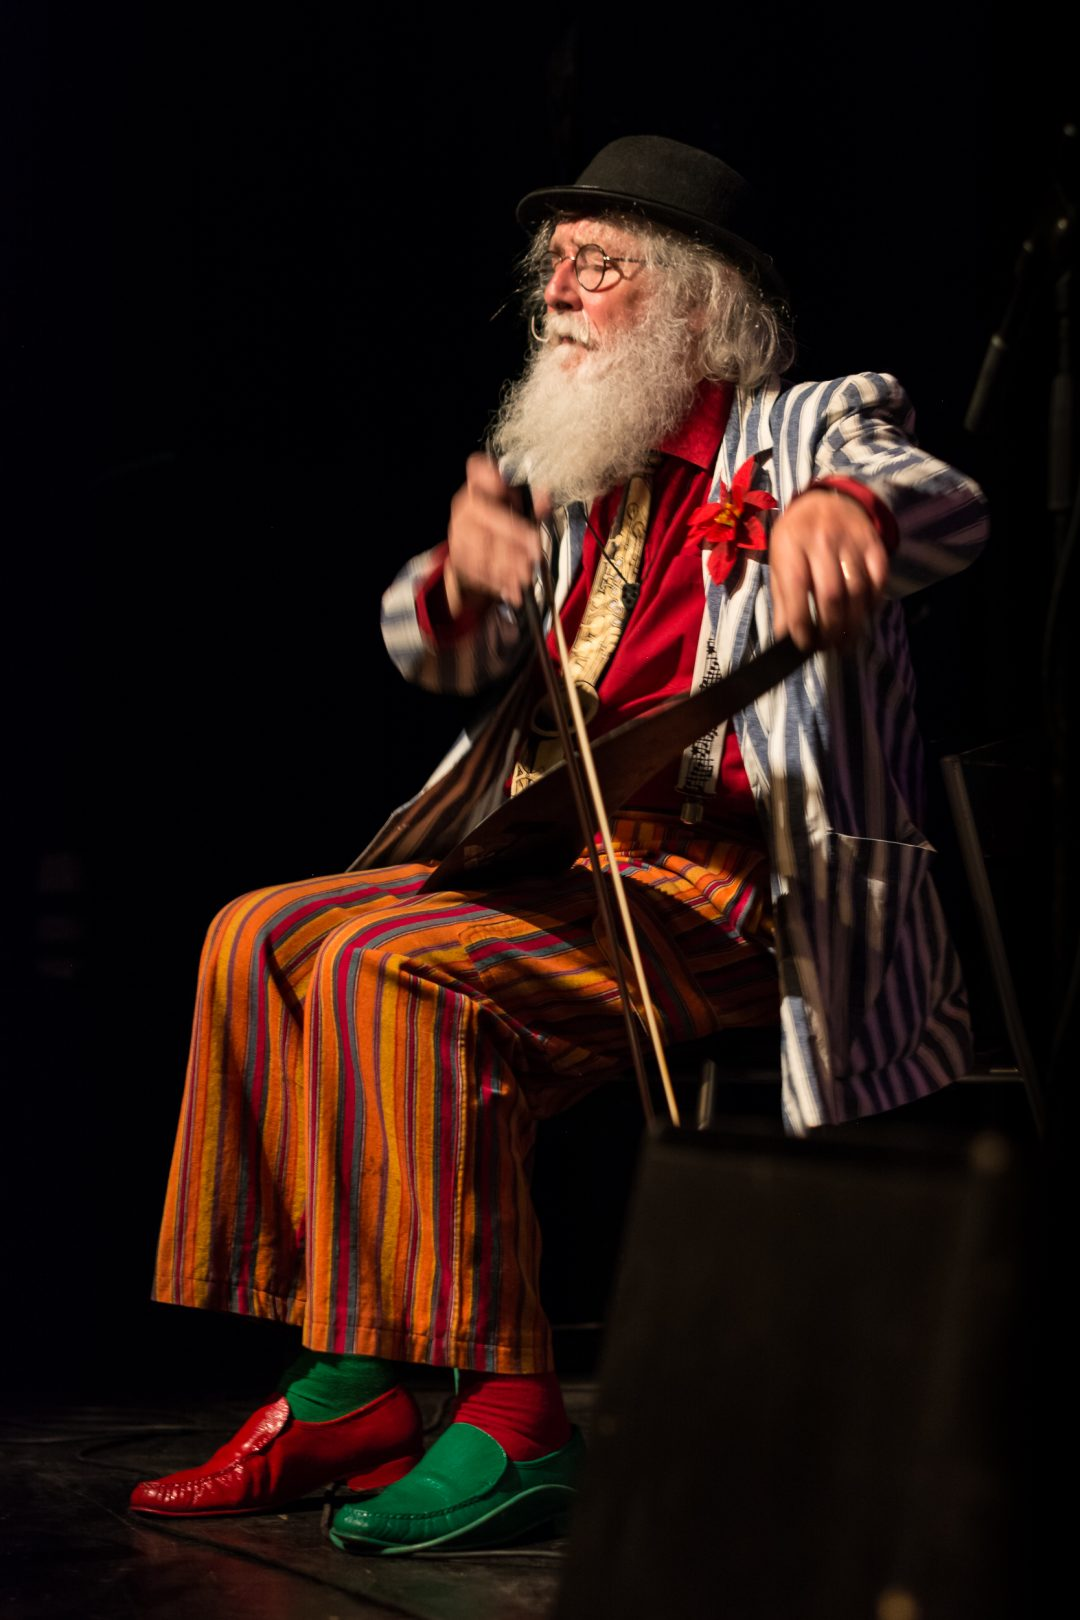 Bob Kerr and his Whoopee Band in concert at Rokken, Volda